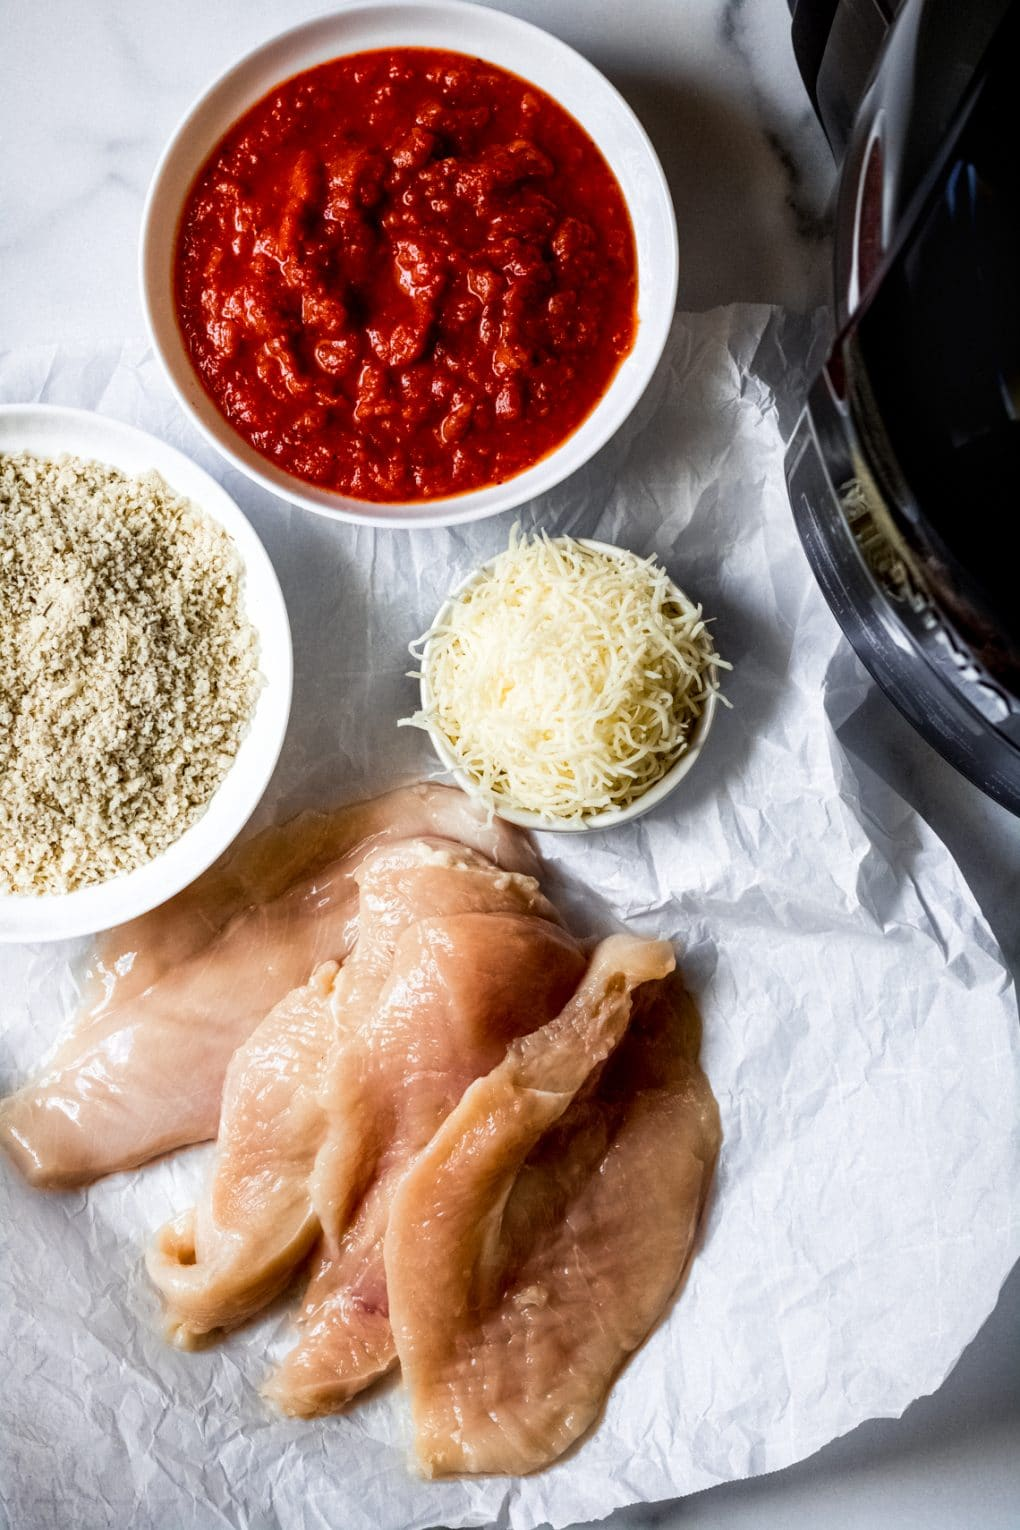 ingredients needed to make air fryer gluten-free chicken parmesan laid out on a table on parchment paper